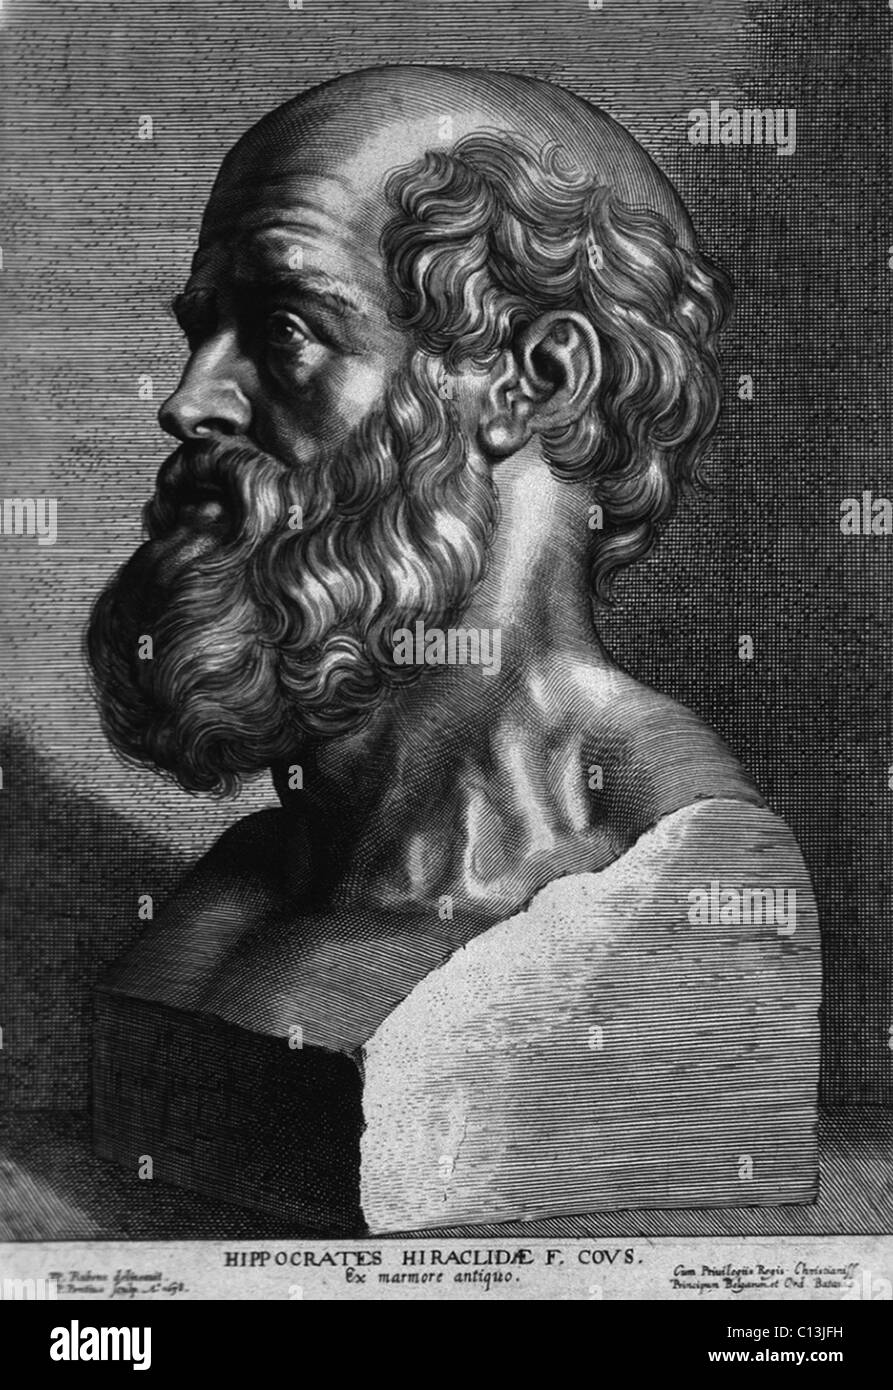 Hippocrates (460-375 BC). Engraving after an ancient sculpture. By P. Pontius, 17th century French school. - Stock Image